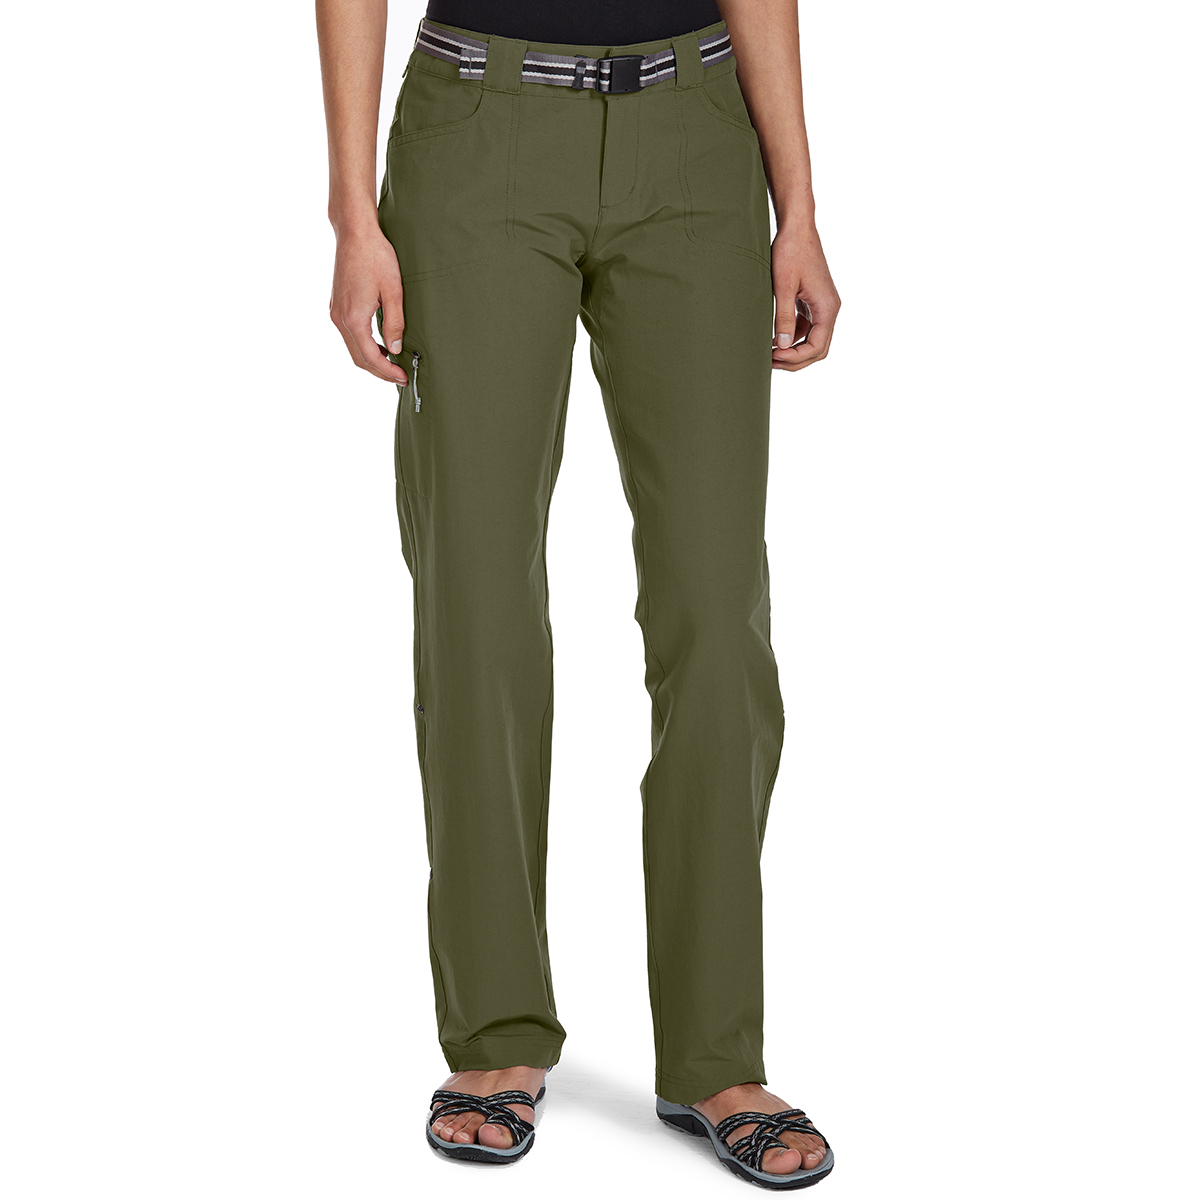 Ems Women's Compass Trek Pants - Green, 0/R